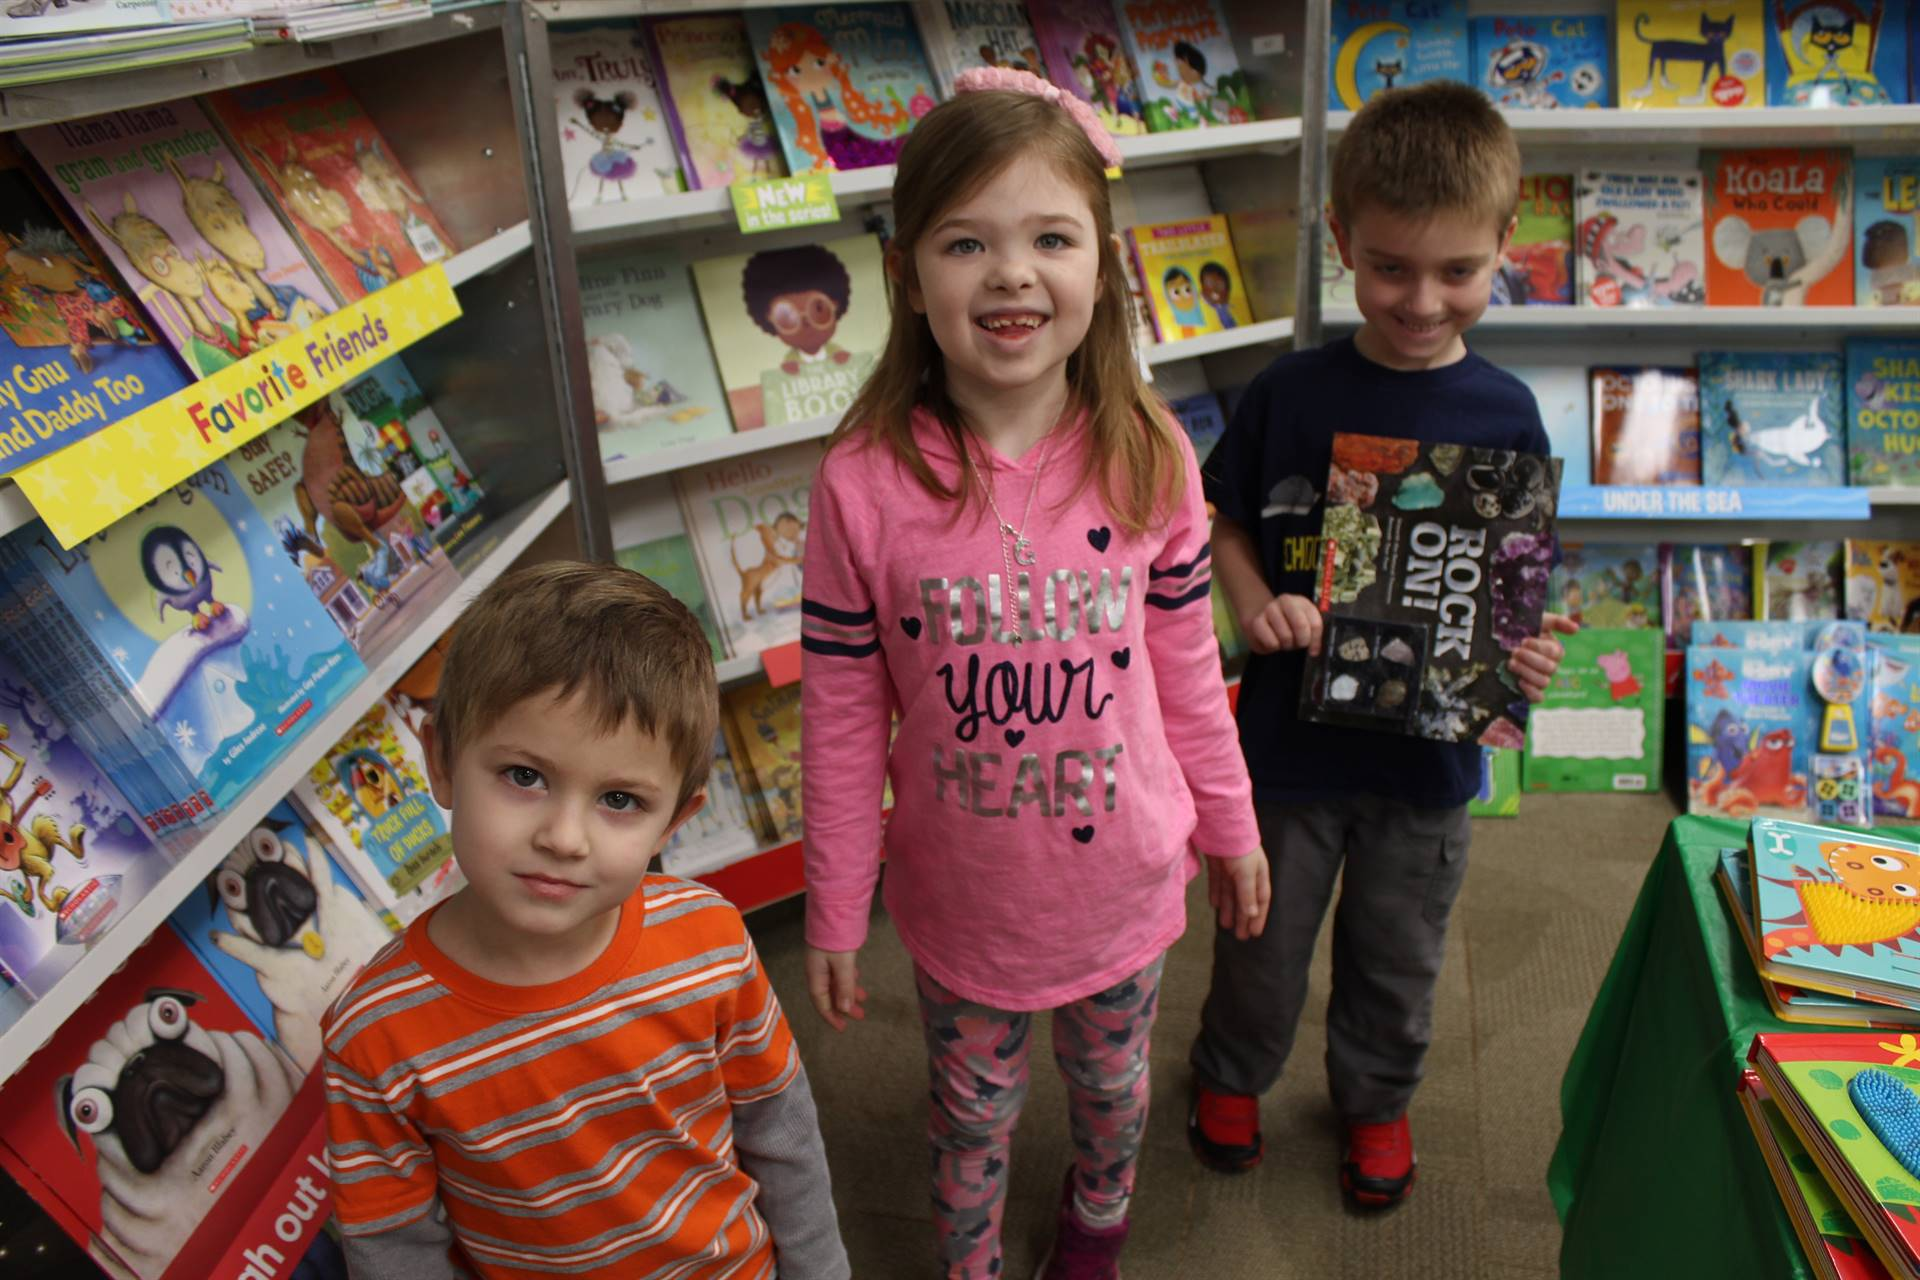 Three students at the book fair